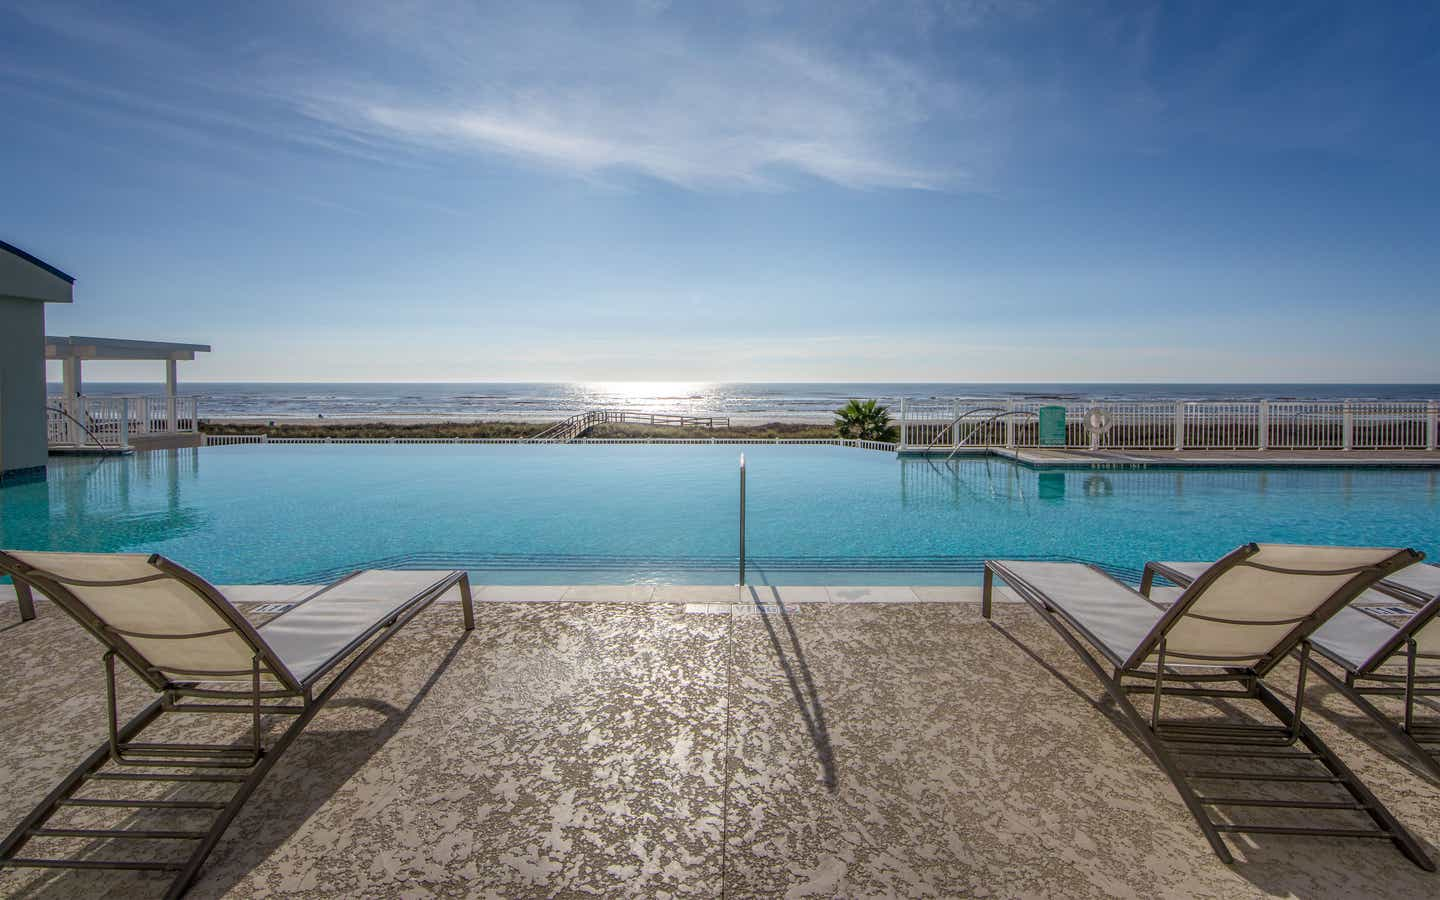 Outdoor oceanfront pool with sun chairs at Galveston Seaside Resort.